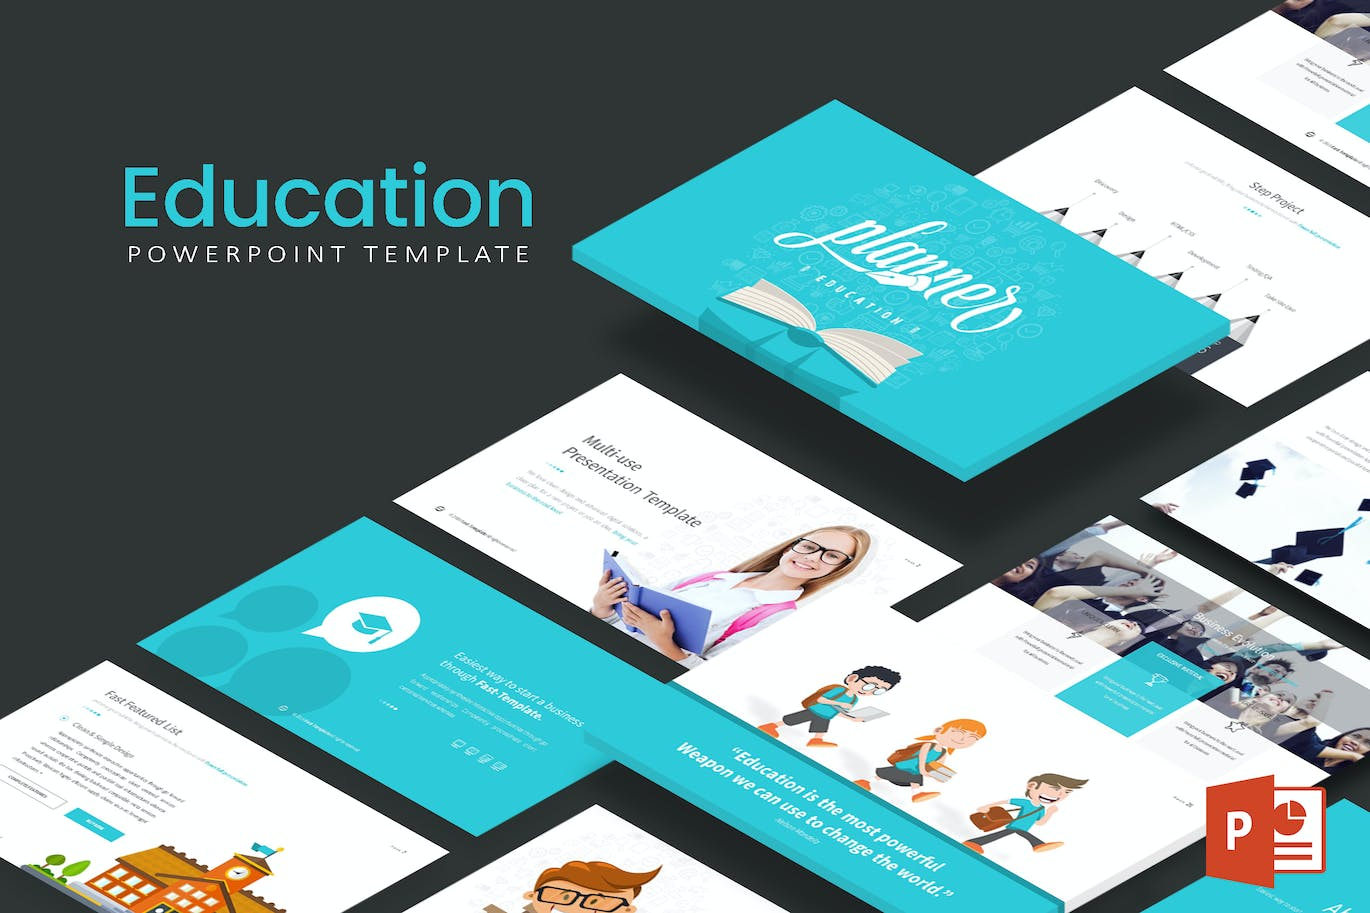 education powerpoint template by inspirasign on envato elements